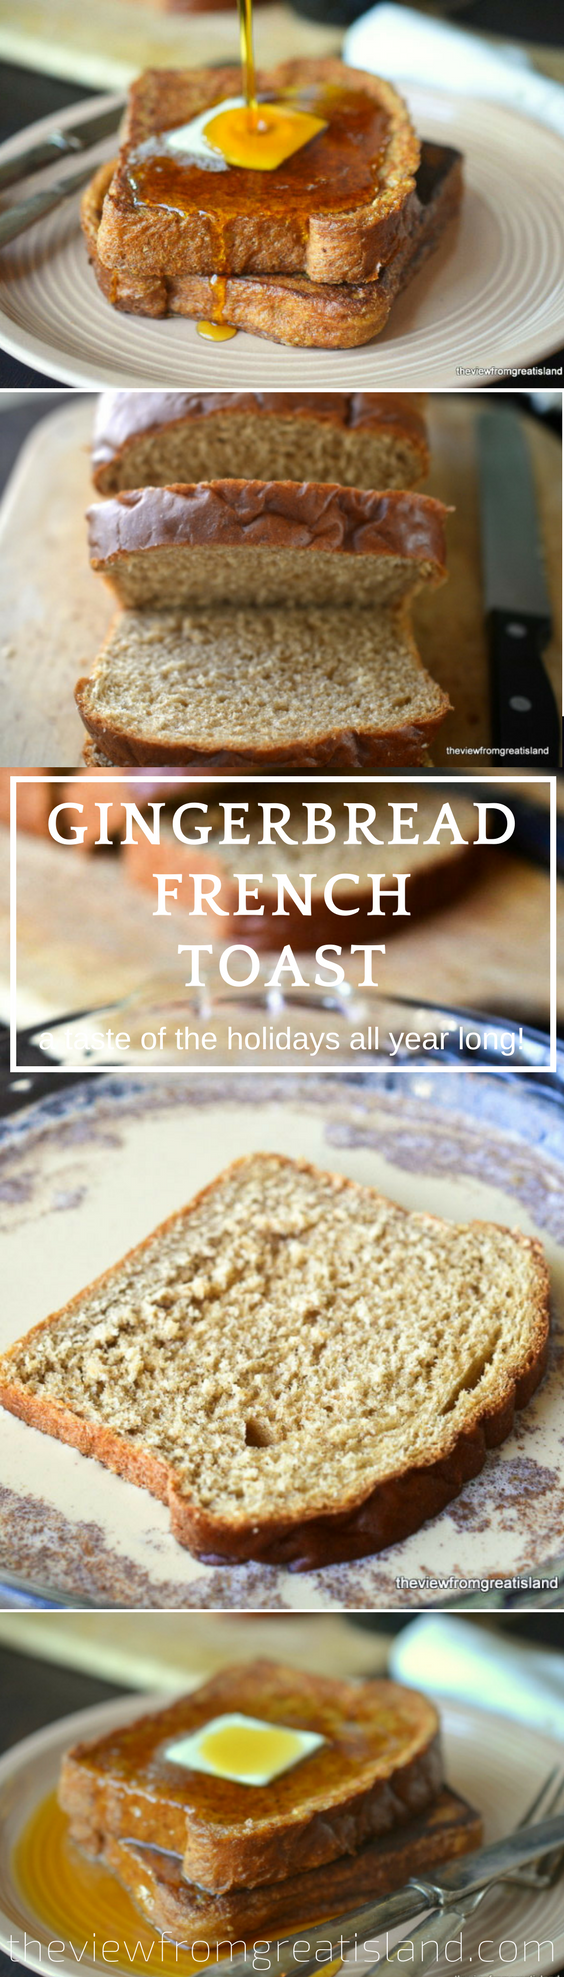 Gingerbread French Toast ~ the simple addition of molasses and a few spices transforms plain French toast into something worthy of lingering over. #breakfast #bread #gingerbread #holidaybreakfast #Christmasbreakfast #molasses #brunch